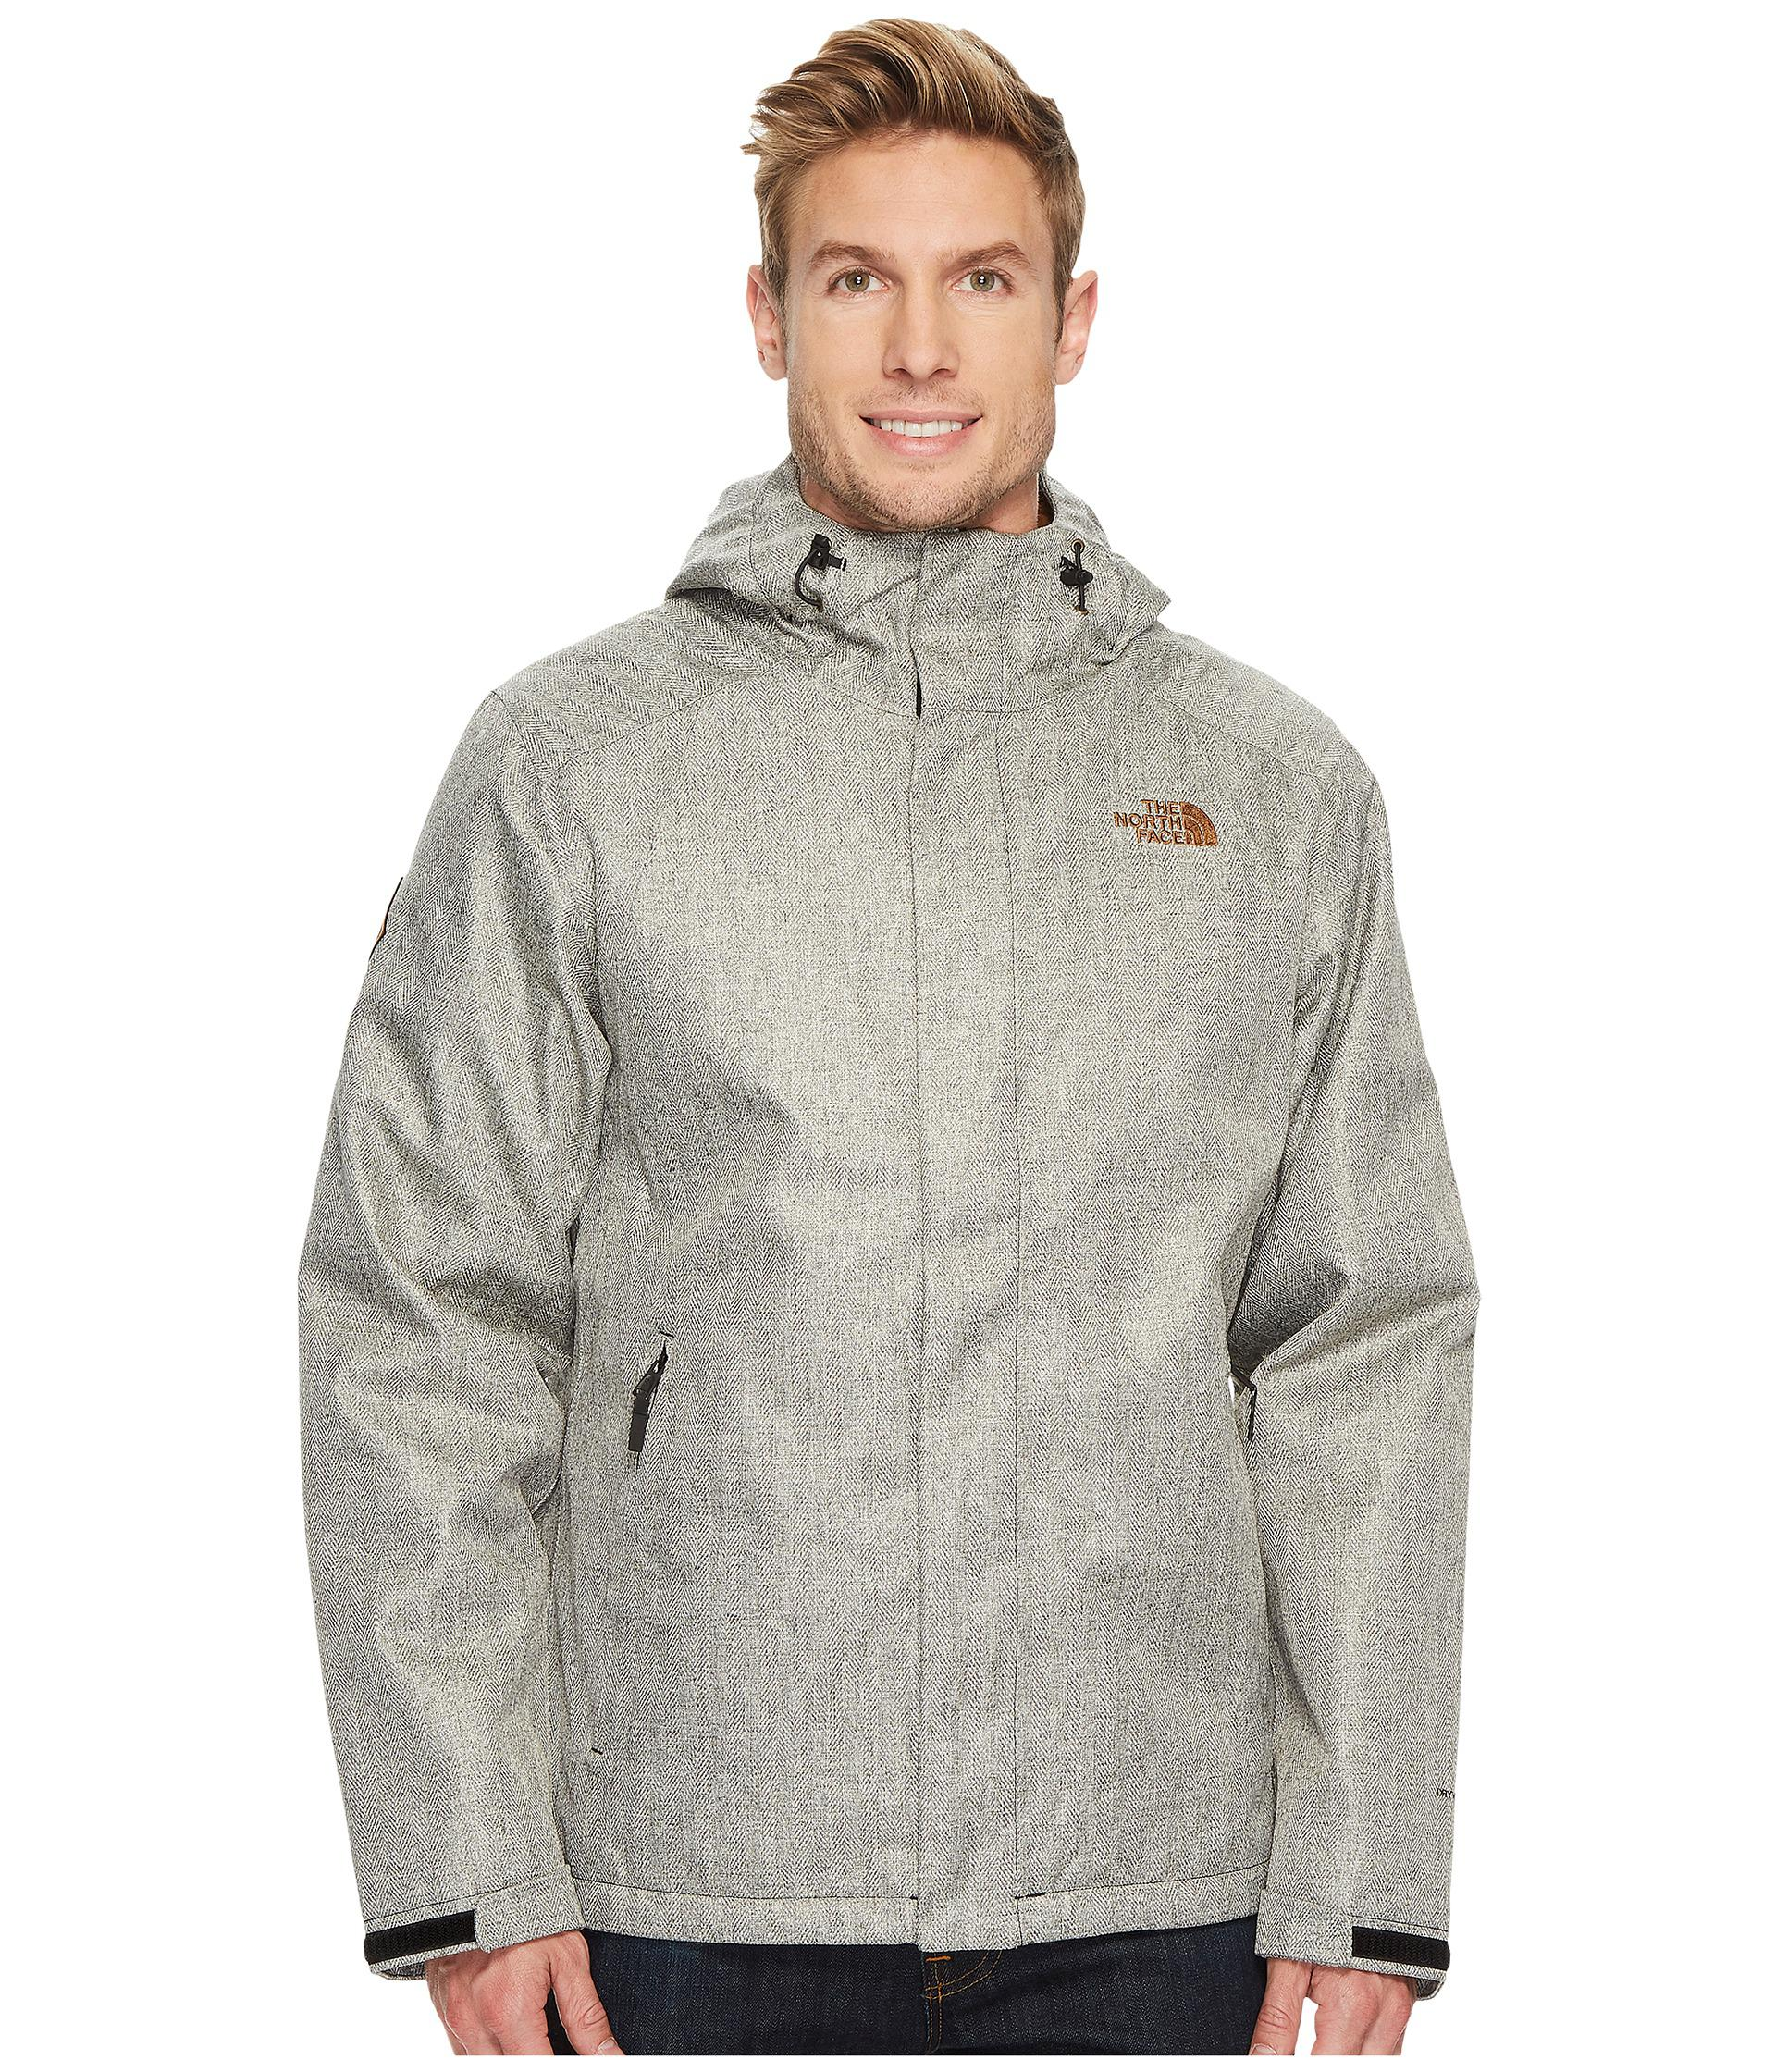 28b3c46a06 ... shop herringbone duffle bag remake jacket the north face inlux  insulated jacket in gray for men ...